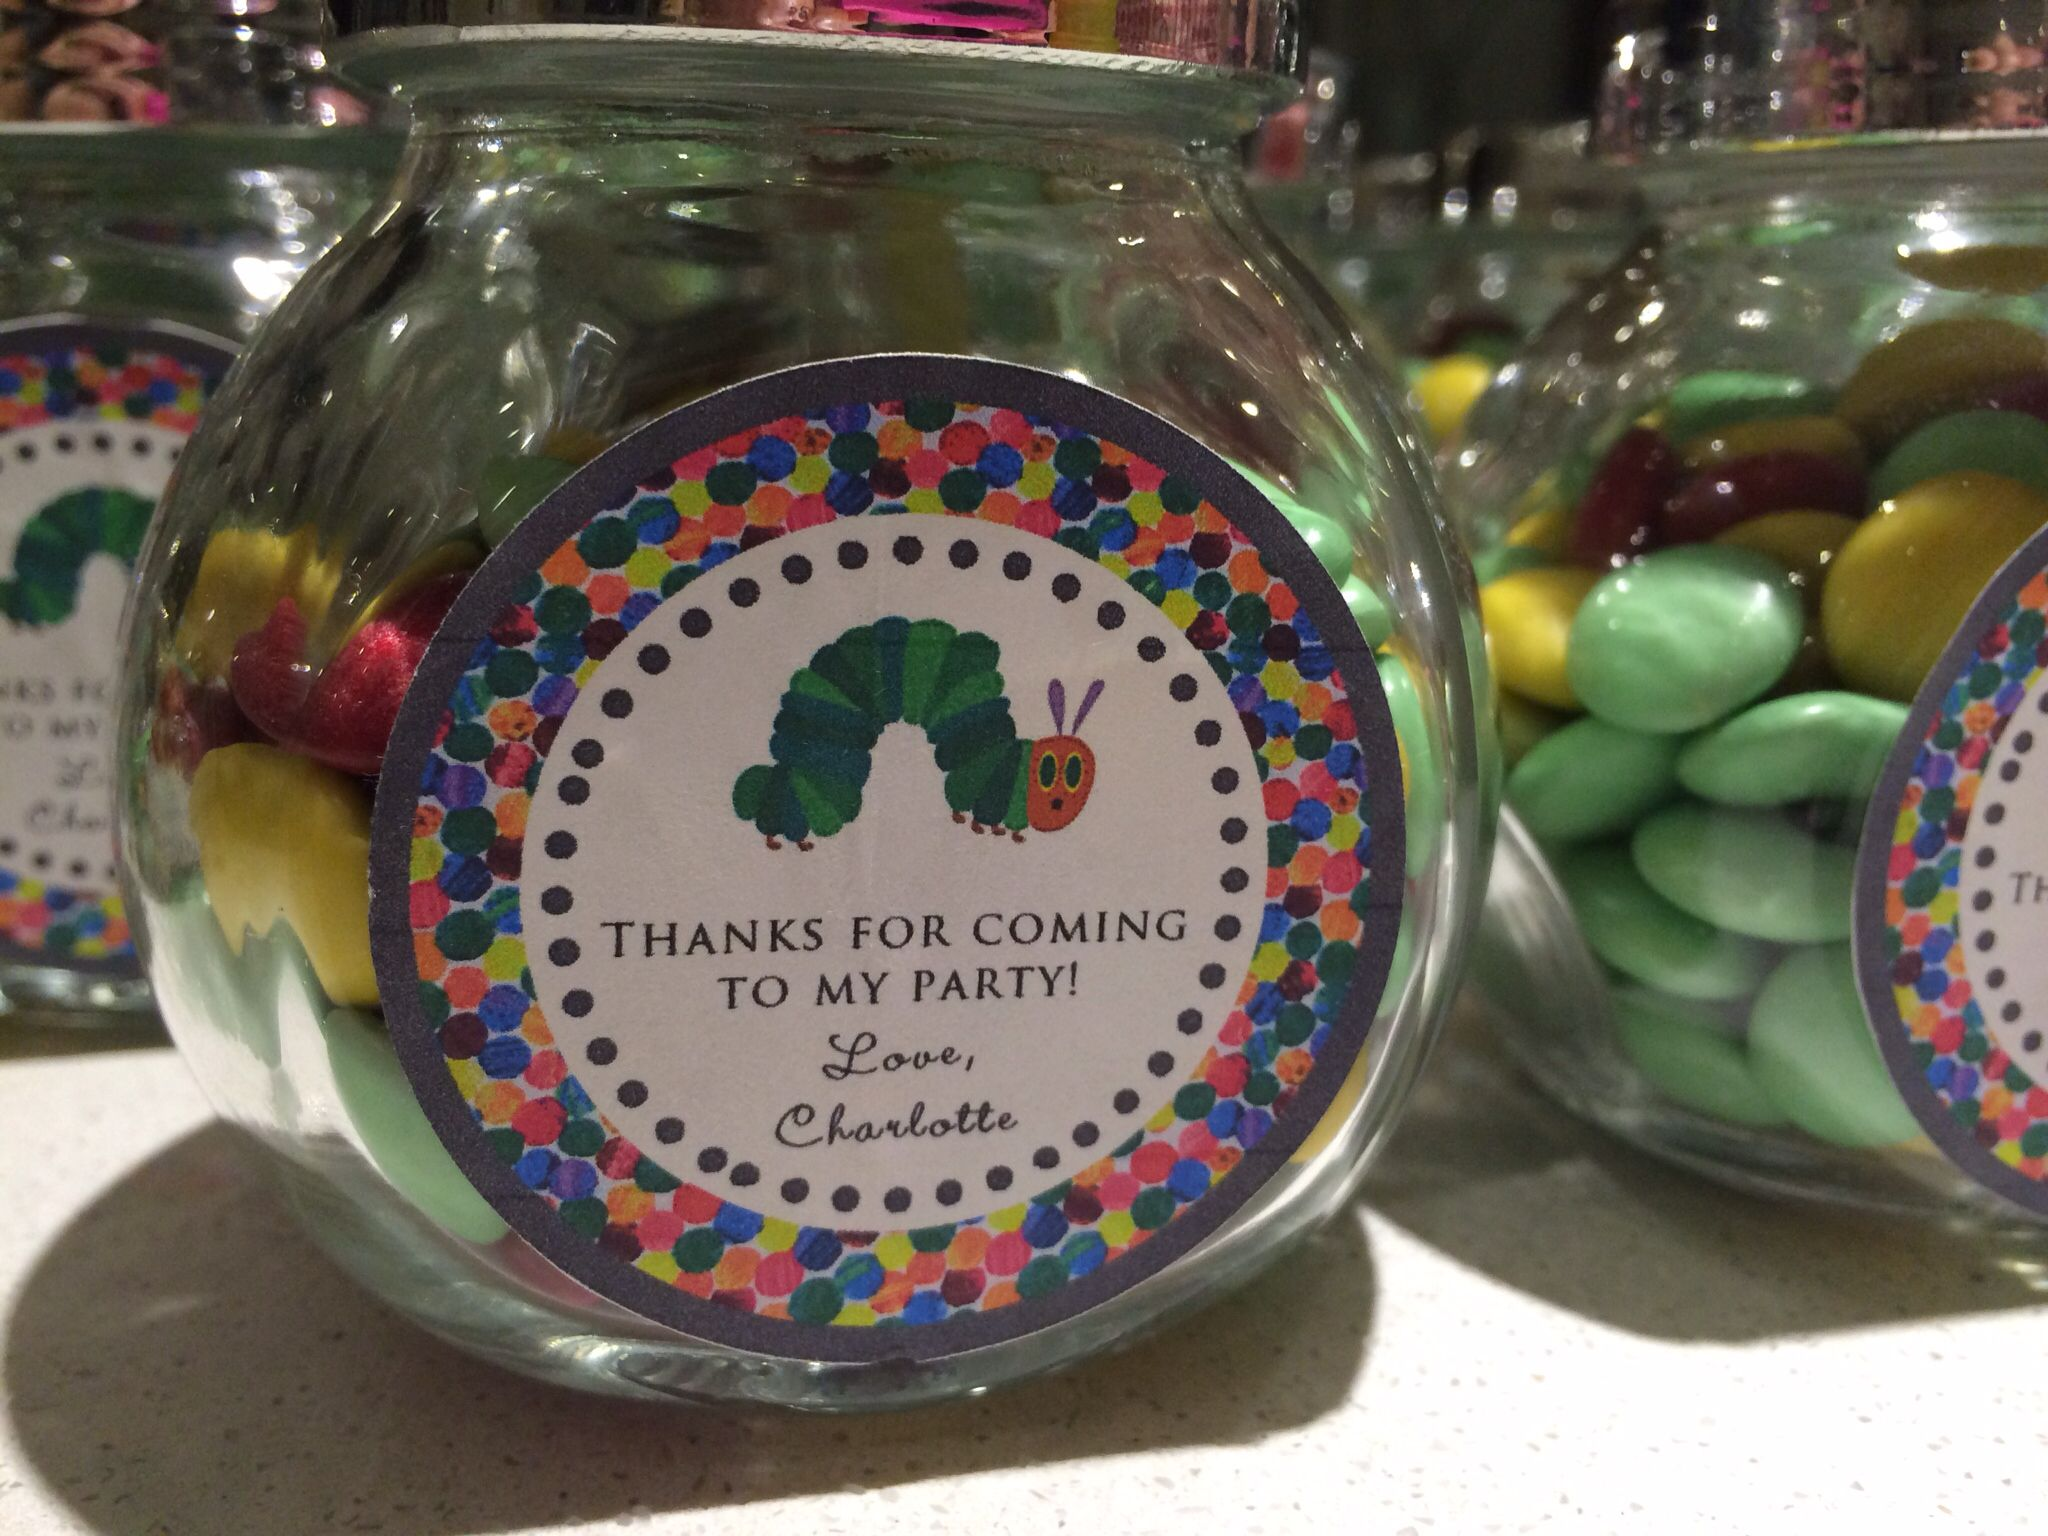 Lolly jars as favours